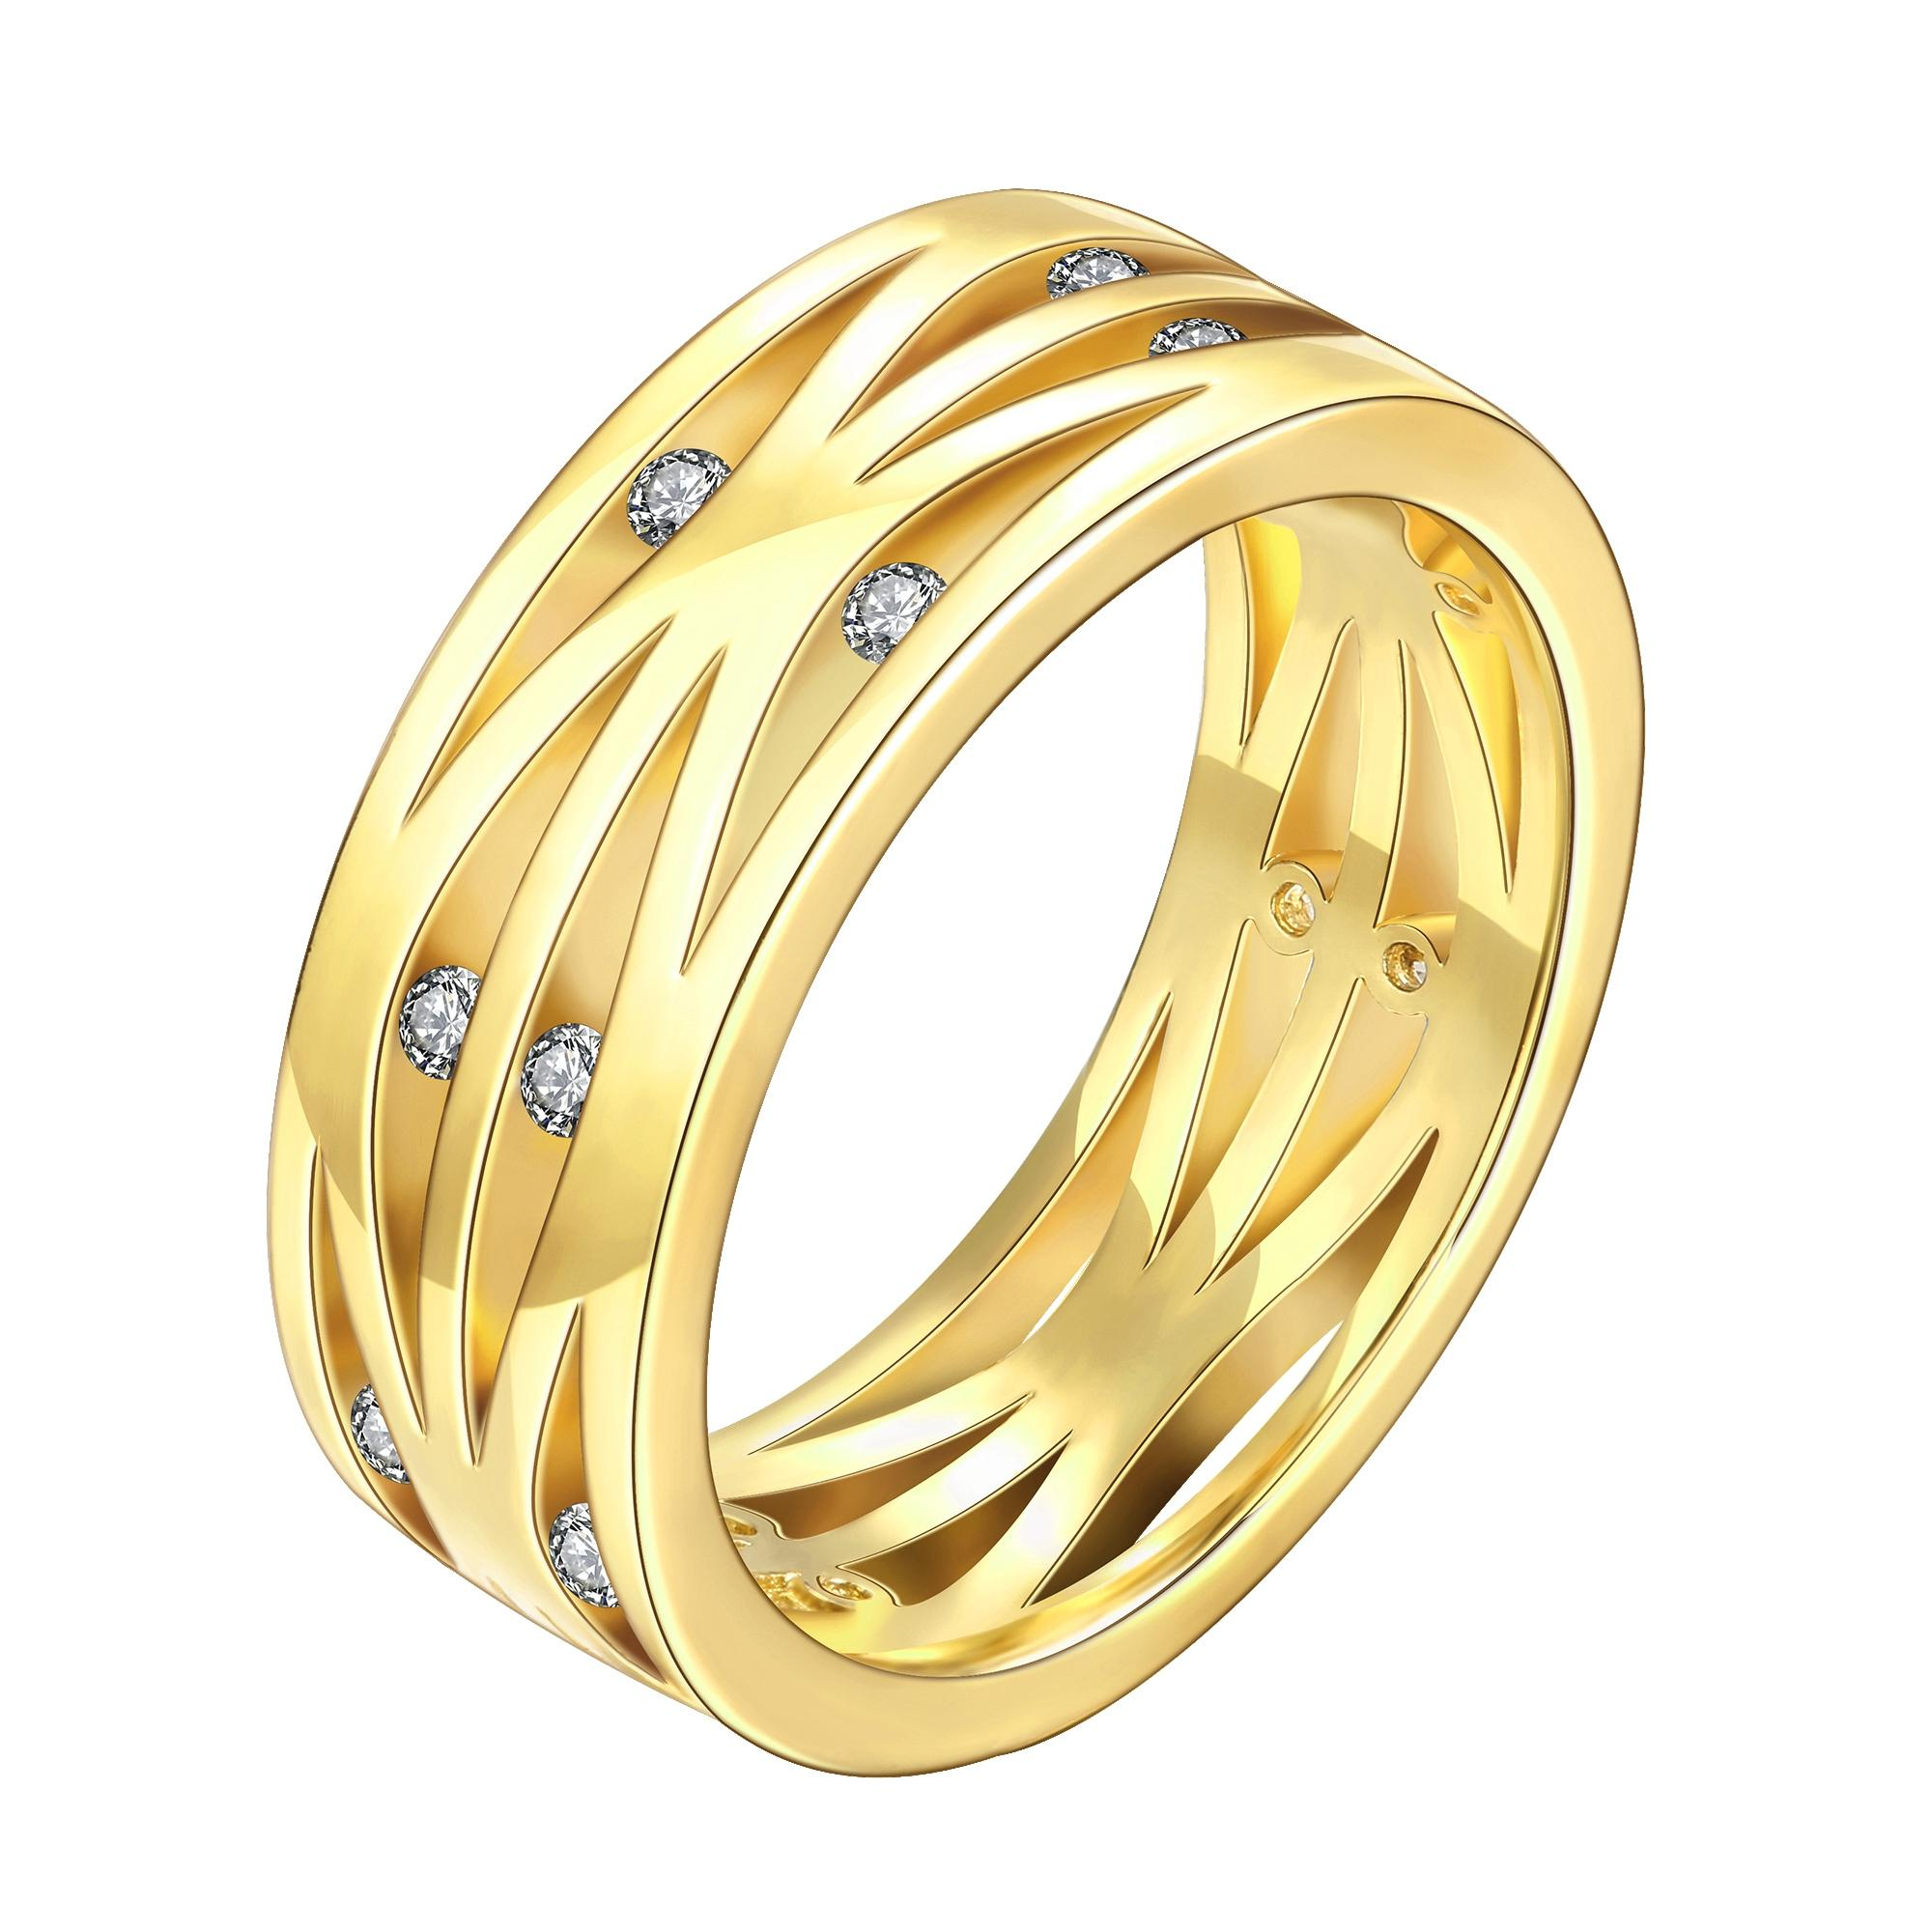 engagement rings gold enhanced round a ring diamond itm ladies not accent dia solitaire yg wedding